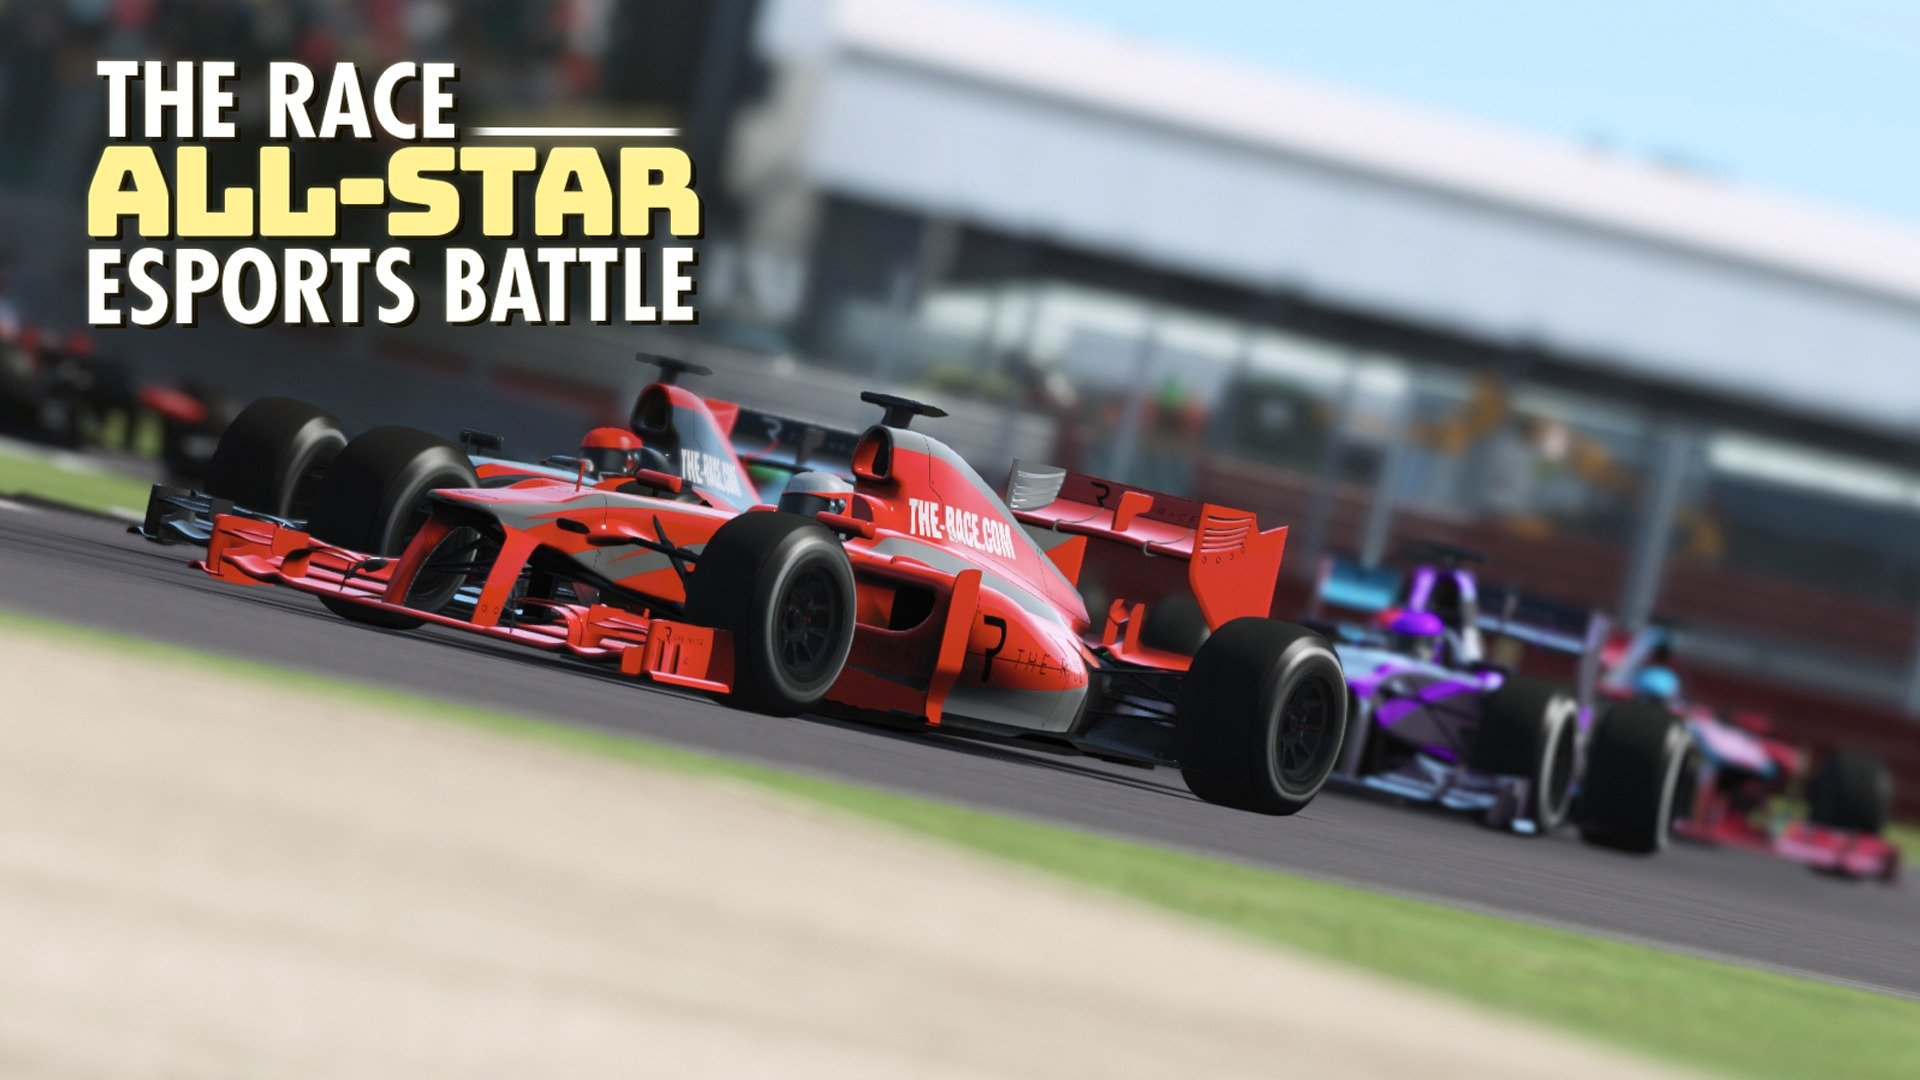 The Race All-Star eSports Battle